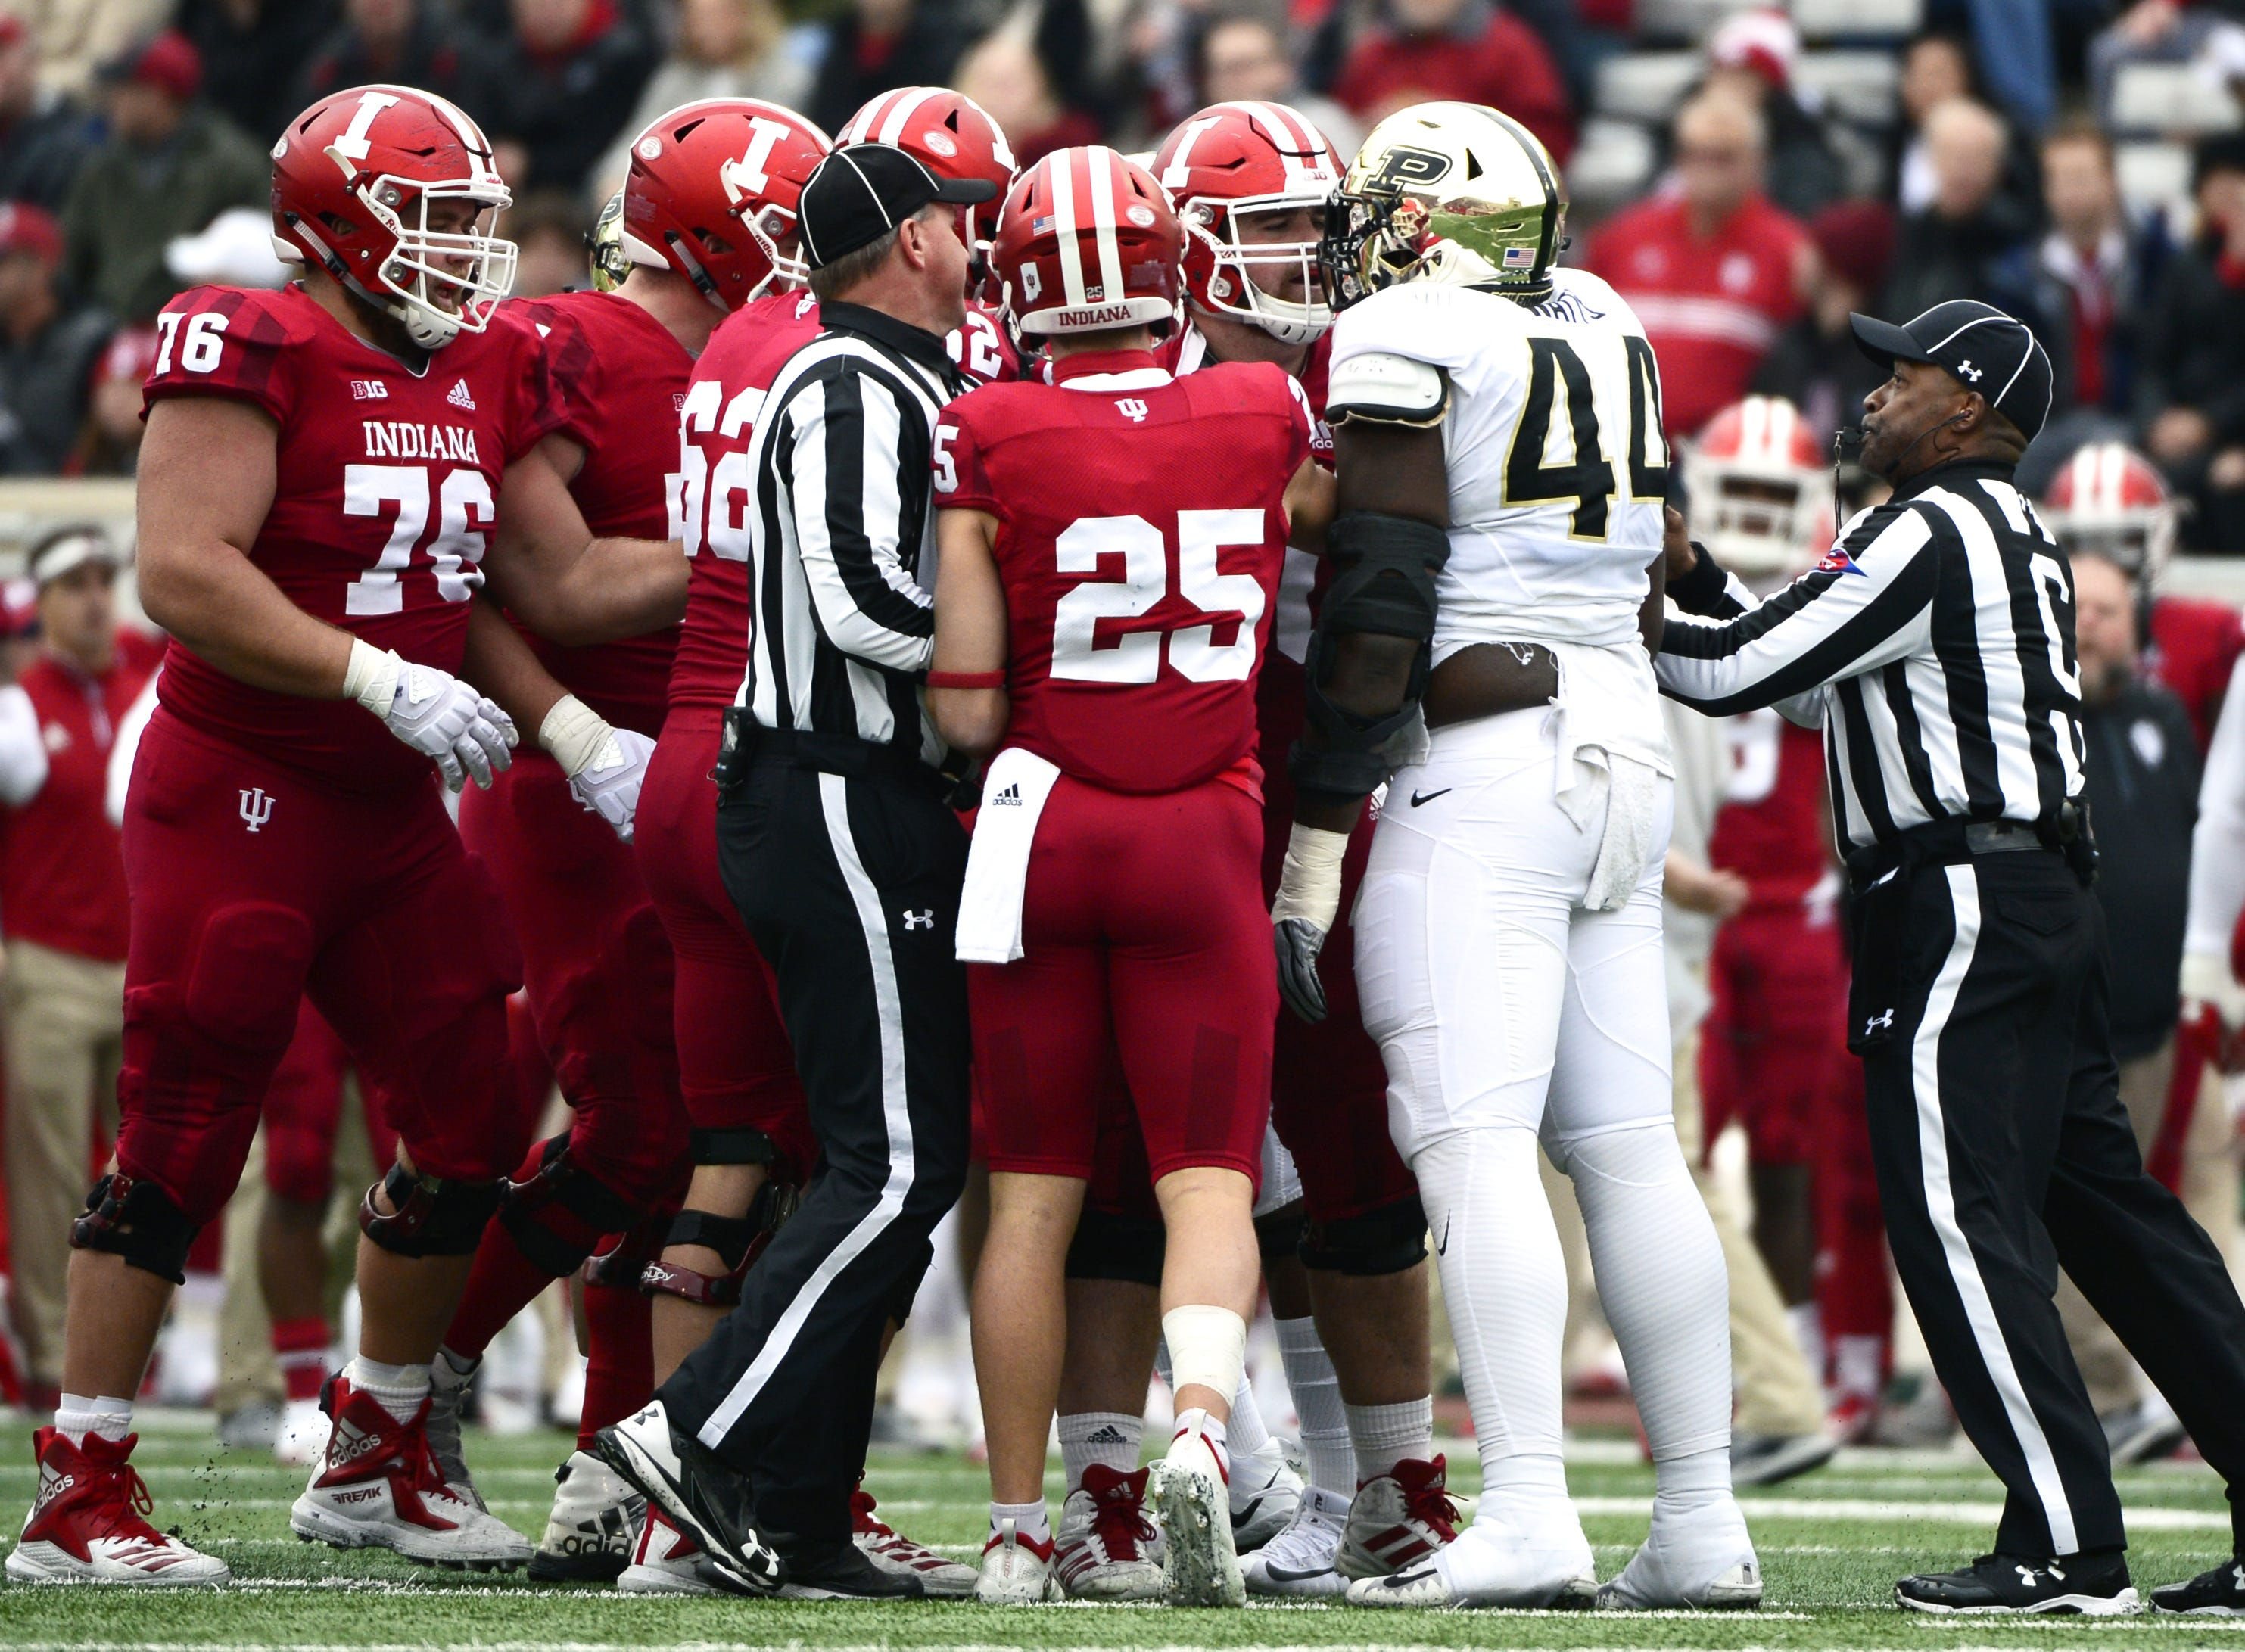 Indiana and Purdue scuffle during the game against Purdue at Memorial Stadium in Bloomington Ind., on Saturday, Nov. 24, 2018.